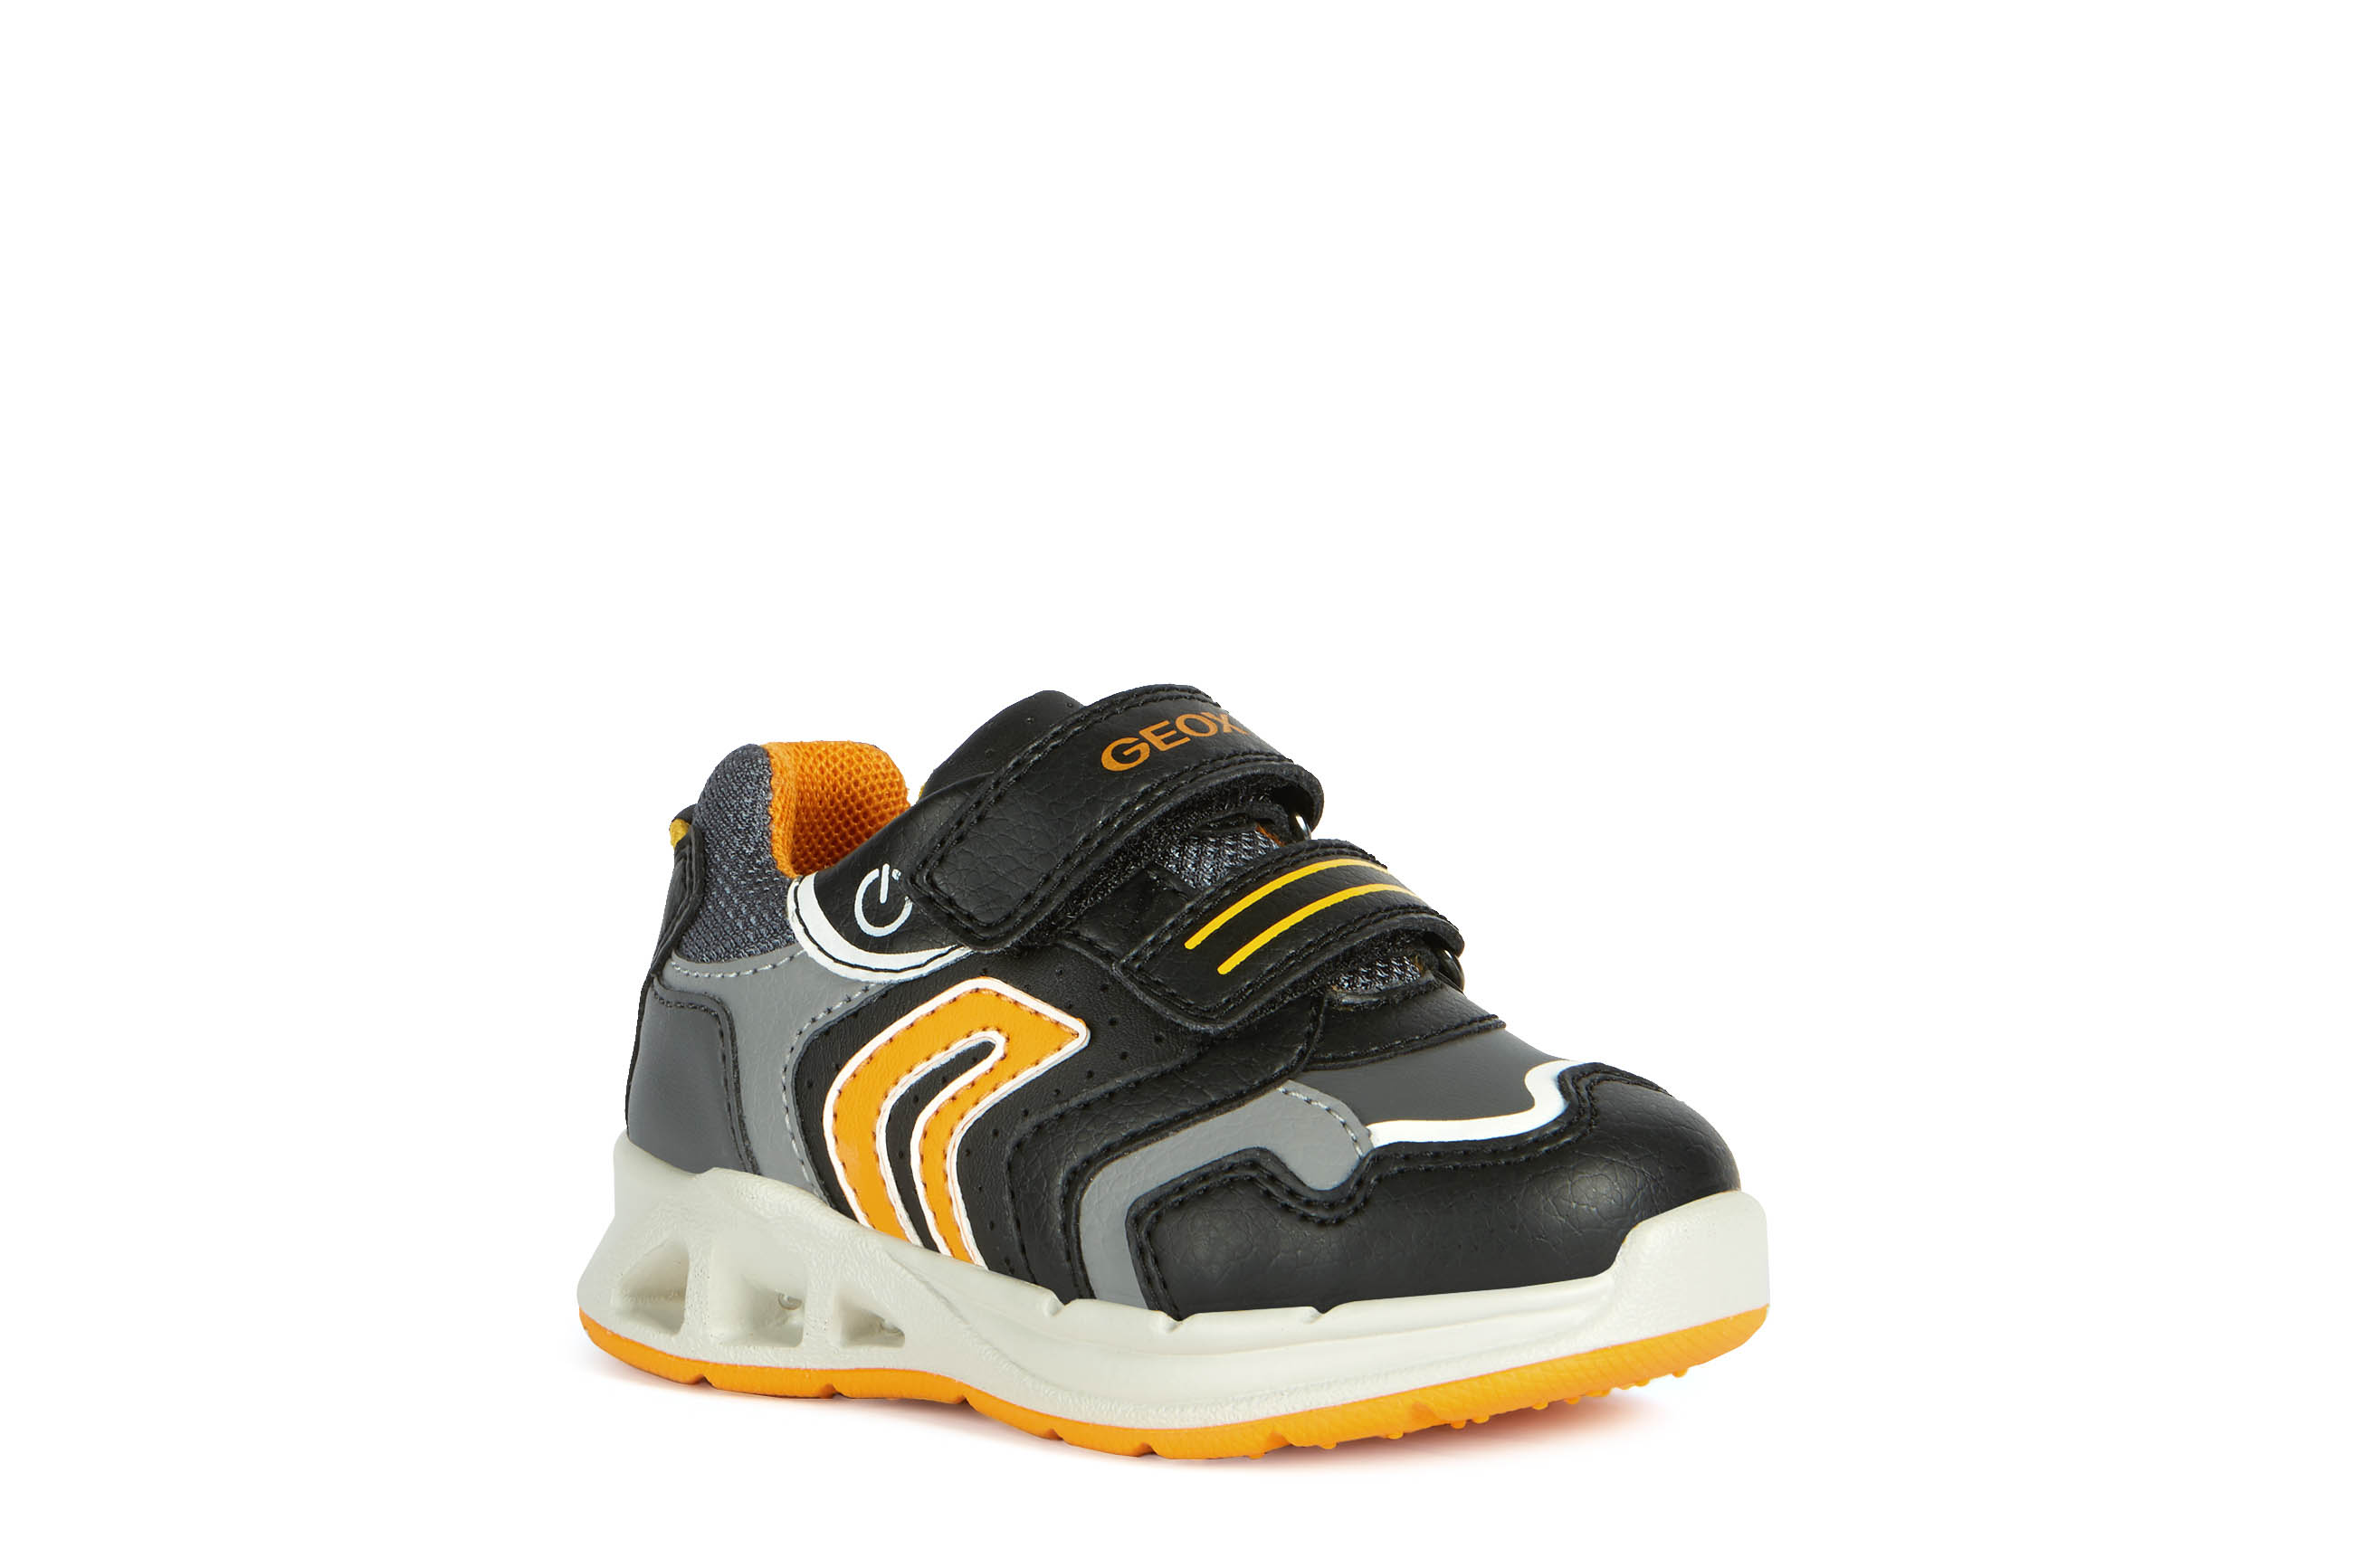 DEPORTIVO B DAKIN BOY A PIEL/SINTETICO  BLACK/ORANGE